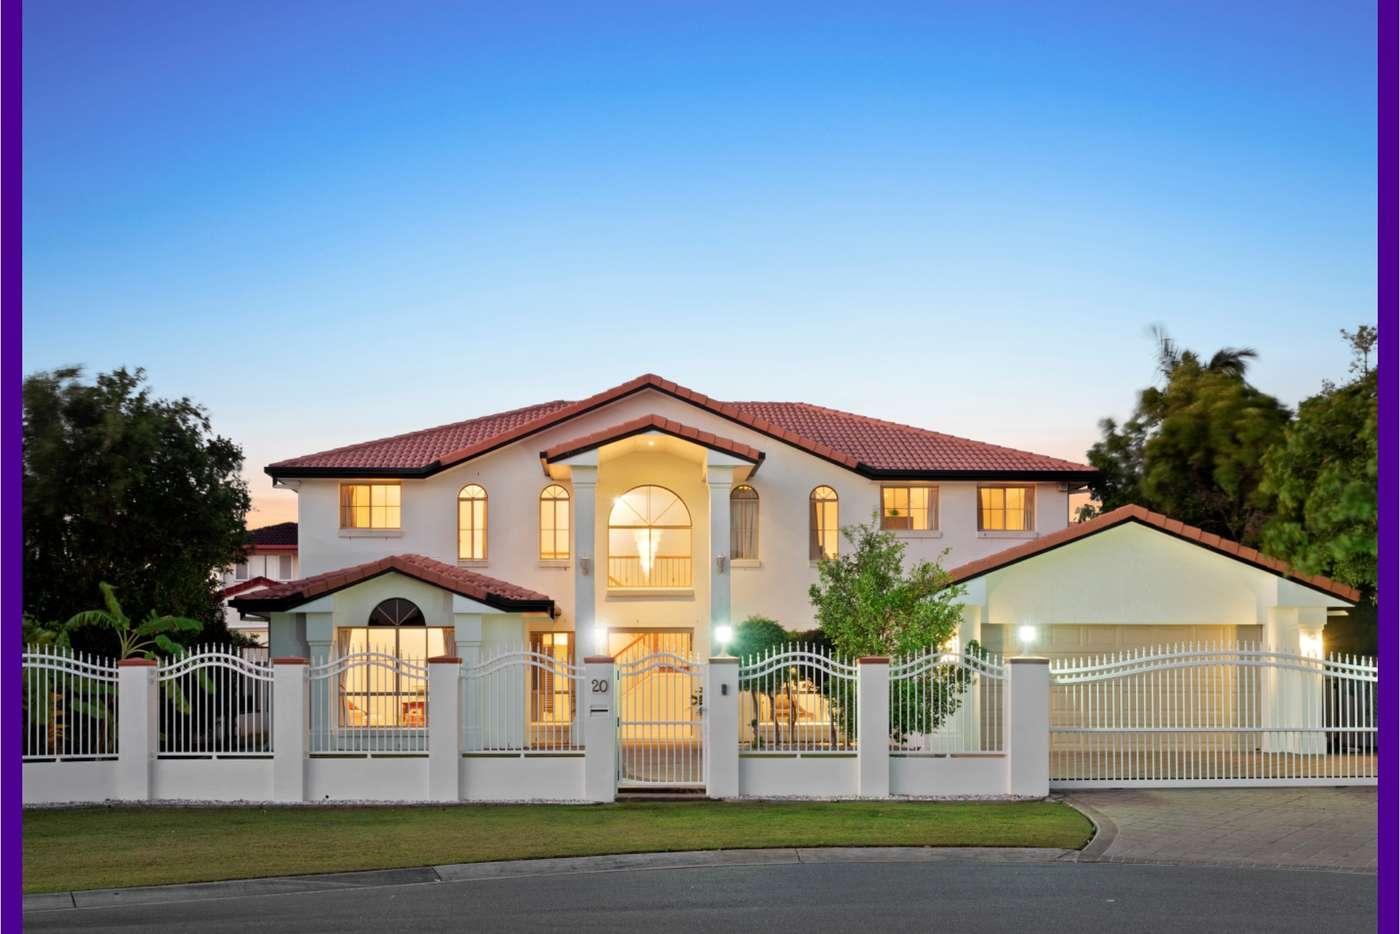 Main view of Homely house listing, 20 Parkhurst Place, Kuraby QLD 4112